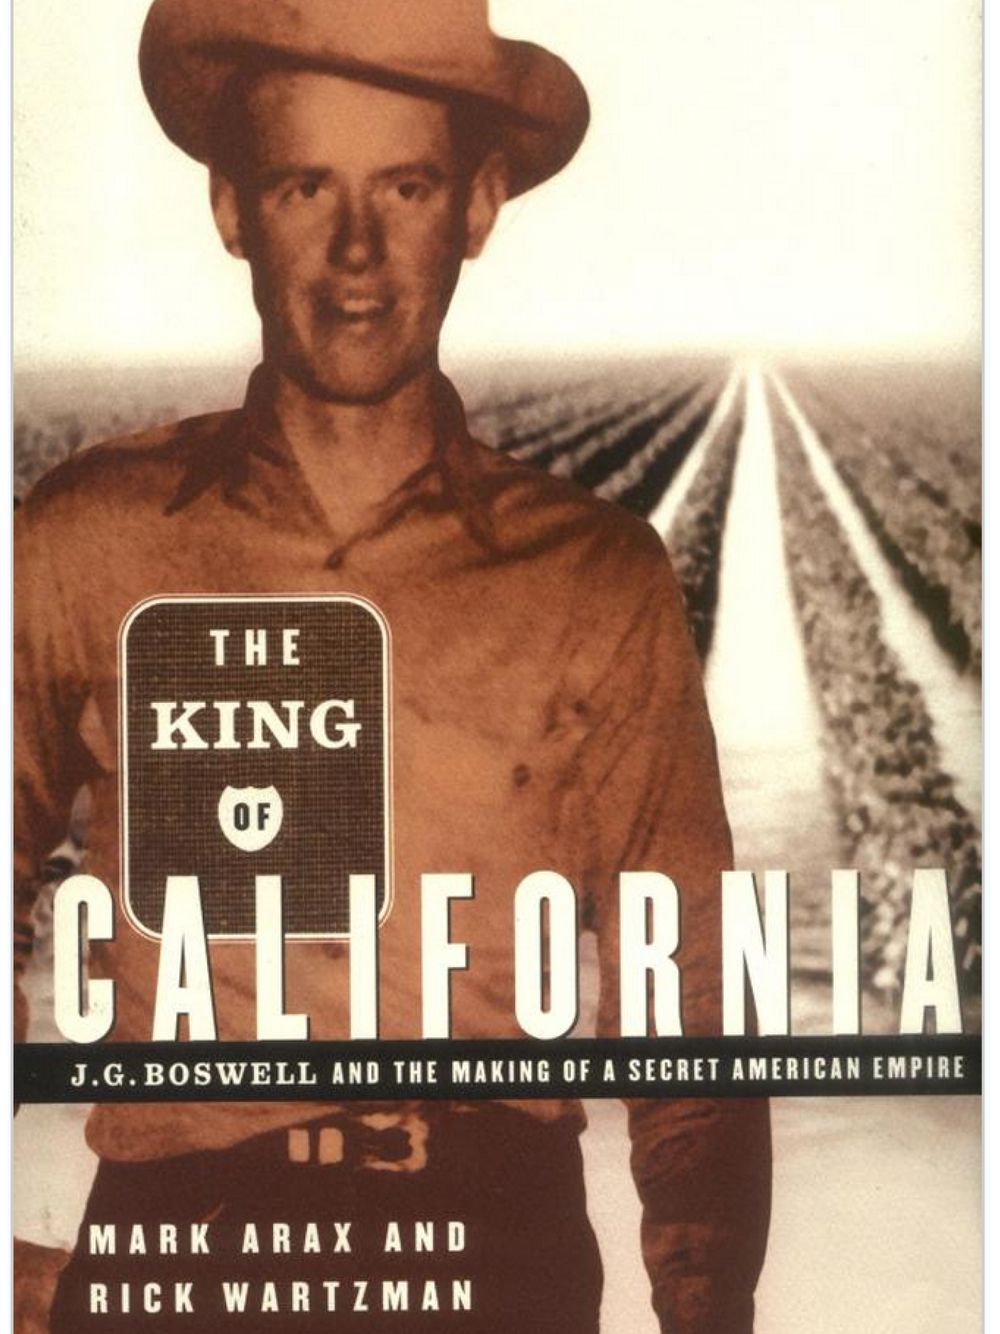 The King Of California: J.G. Boswell and The Making Of A Secret American Empire. Mark Arax & Rick Wartzman 2003